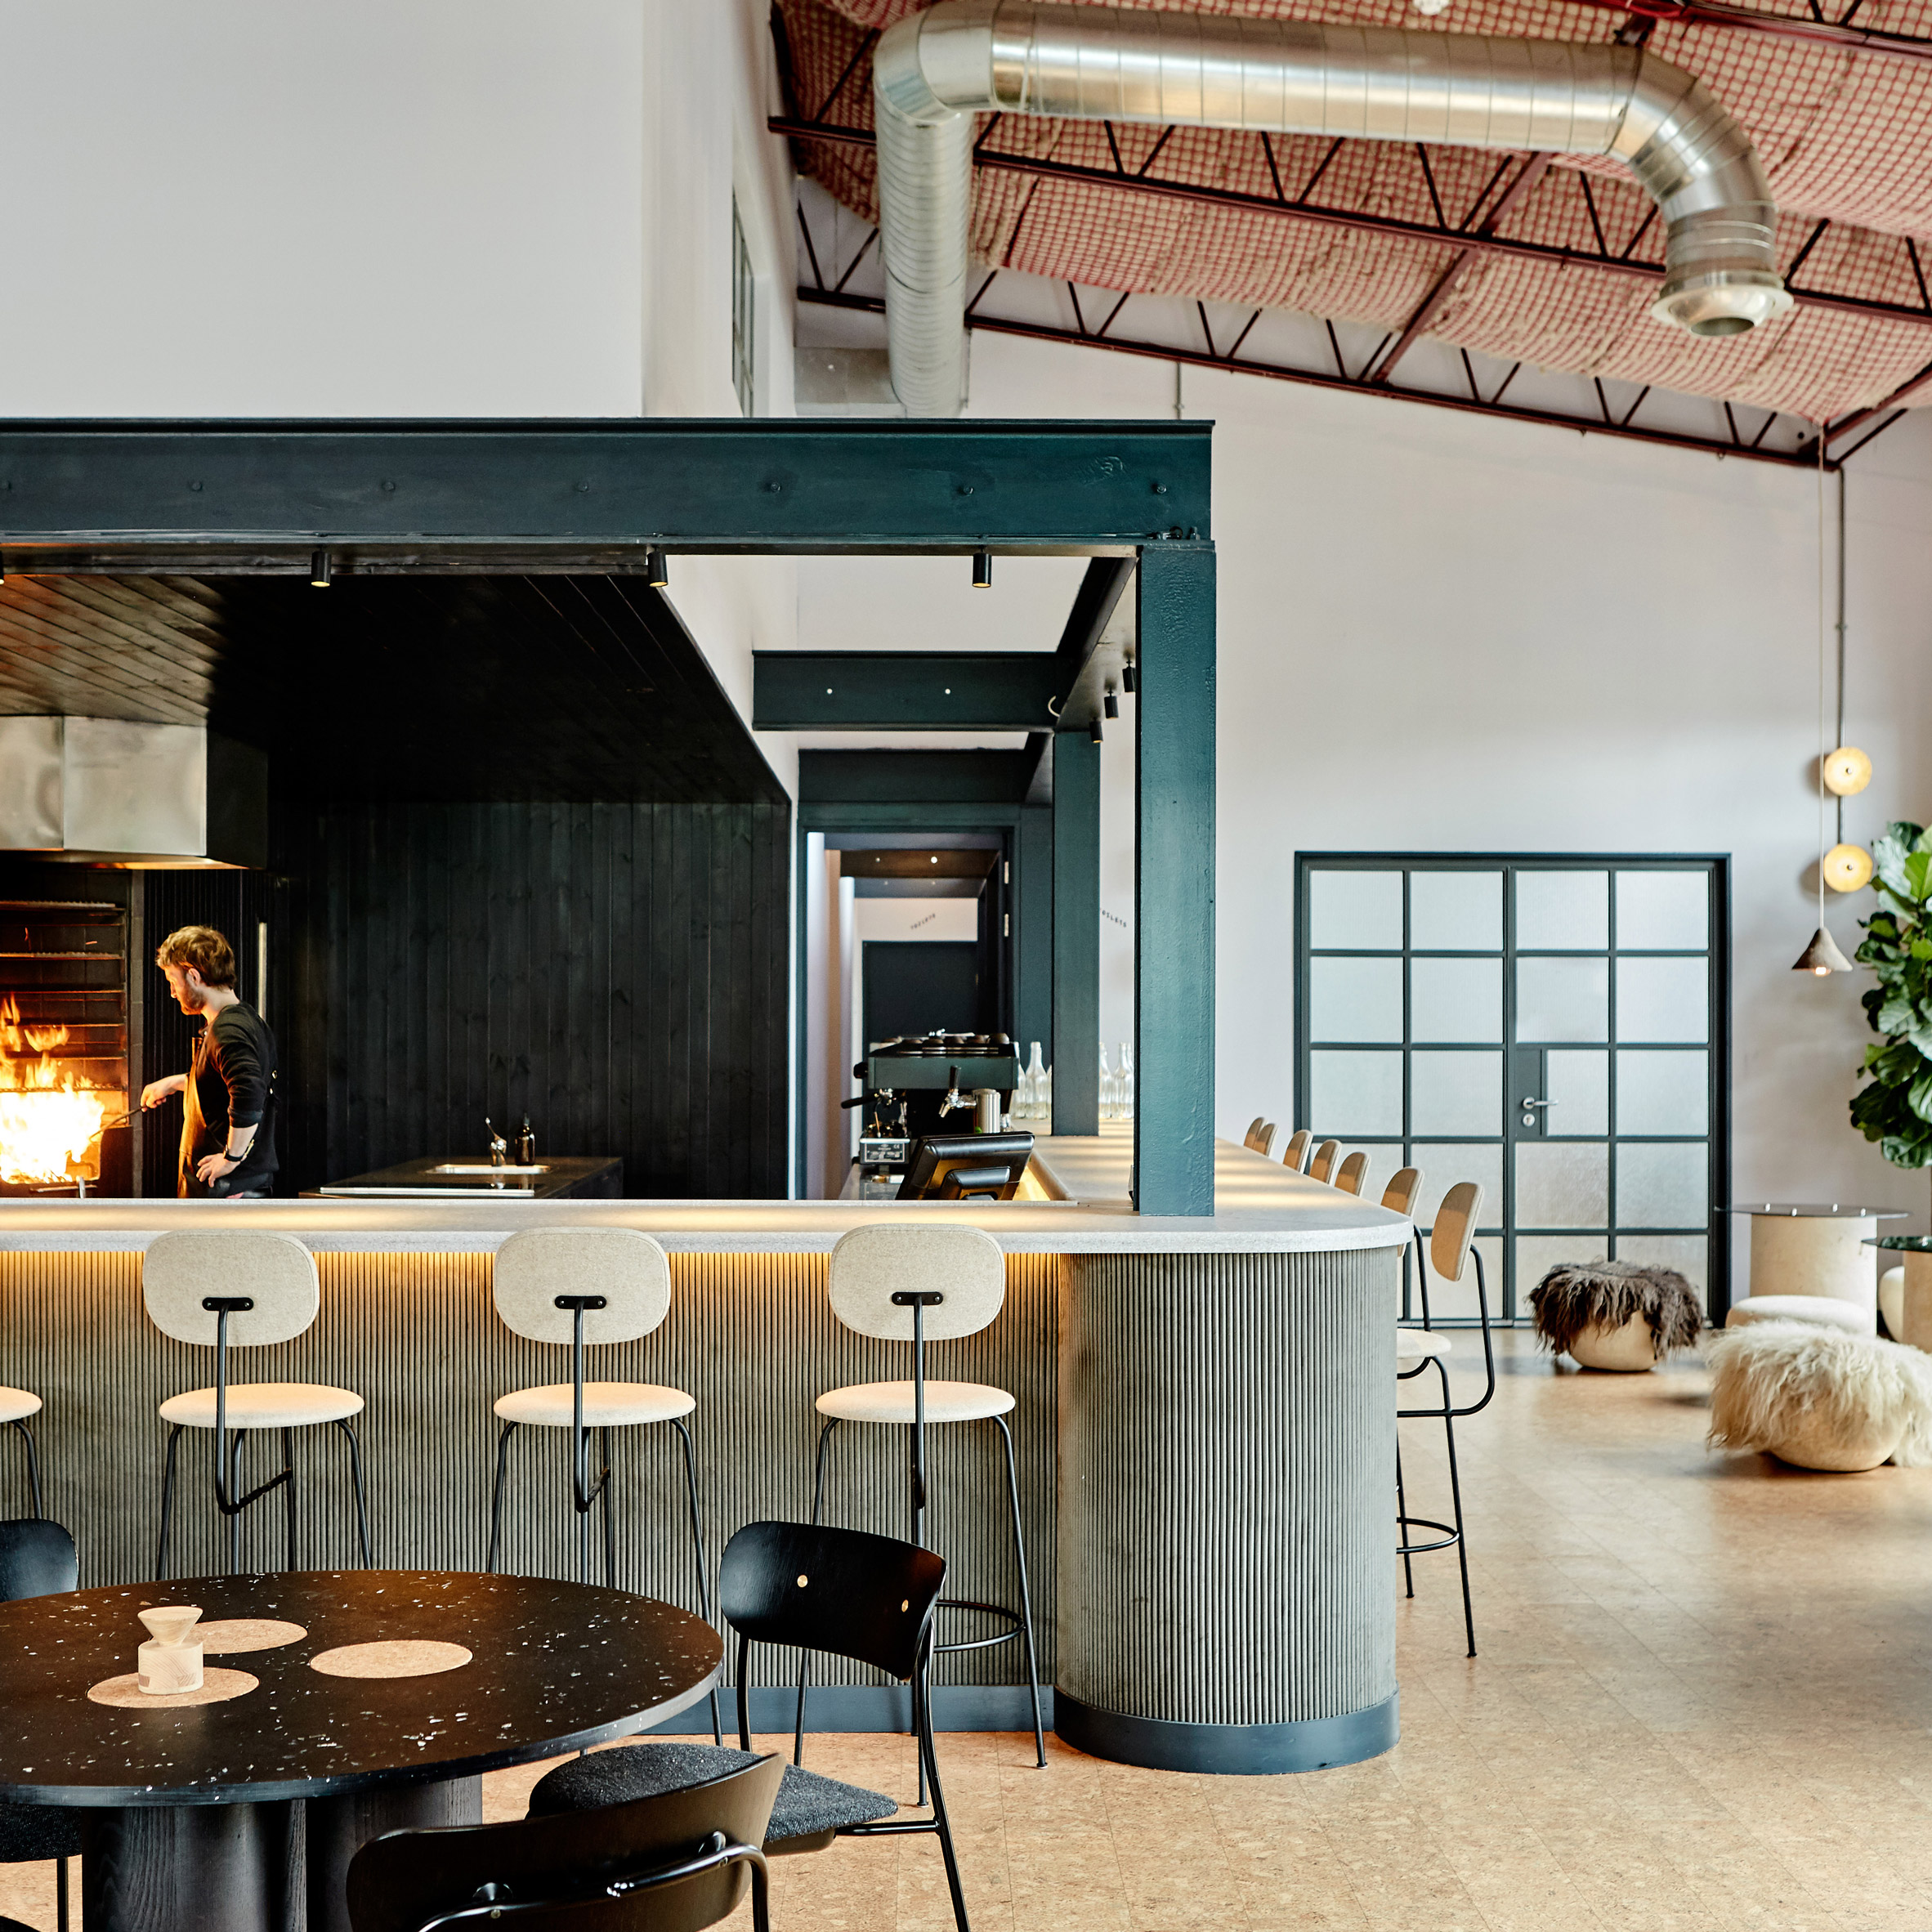 Silo Zero-waste Restaurant Features Sustainable Food And Furniture